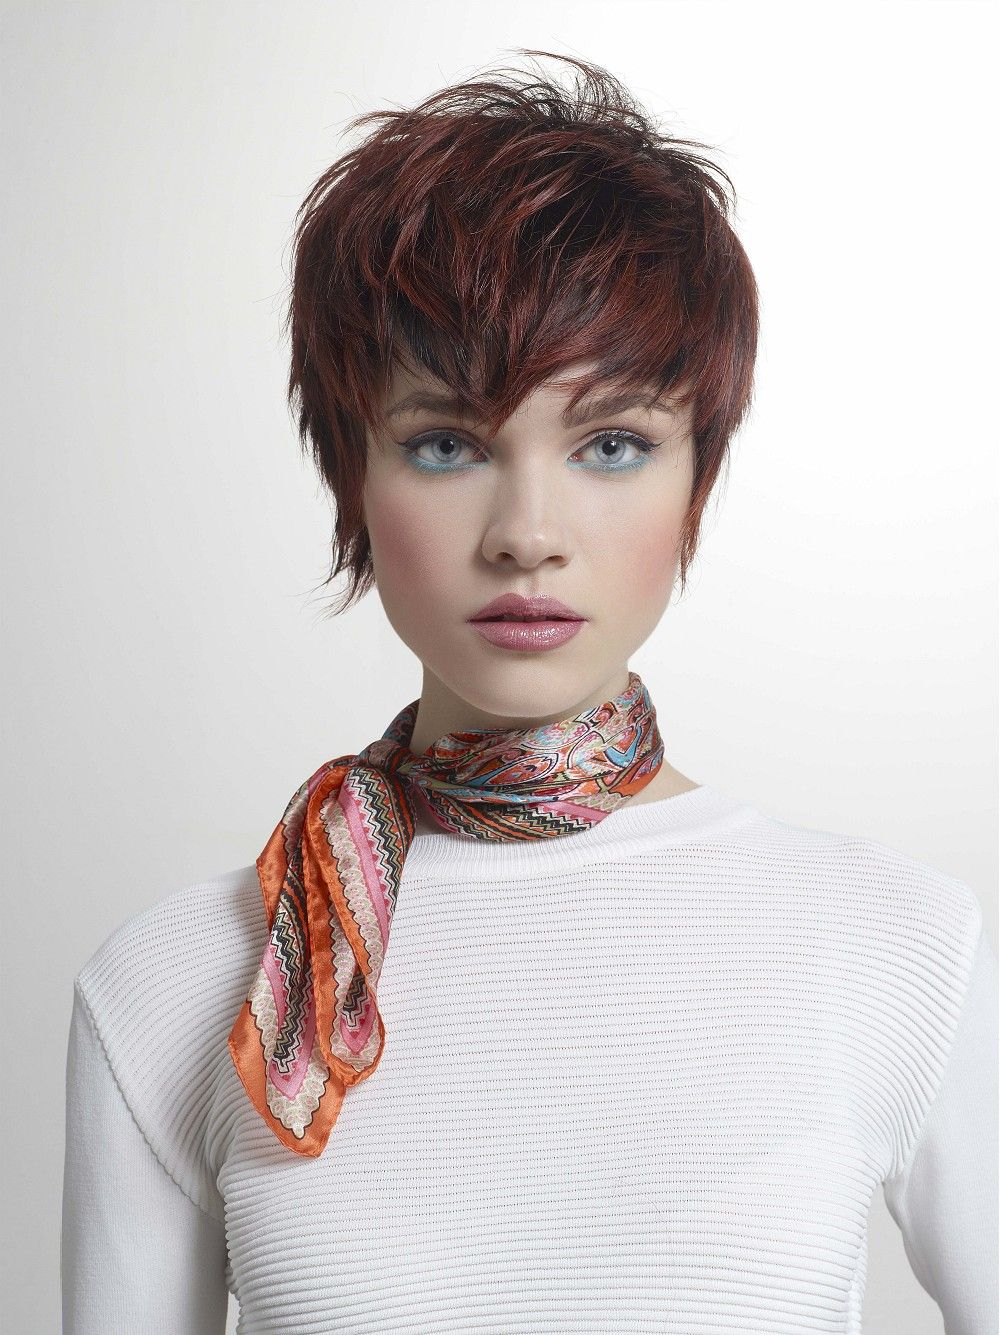 Large Image Of Short Brown Straight Hairstyles Provided By Tchip Coiffure Picture Number 23159 Short Hair Styles Hair Styles Cool Hairstyles